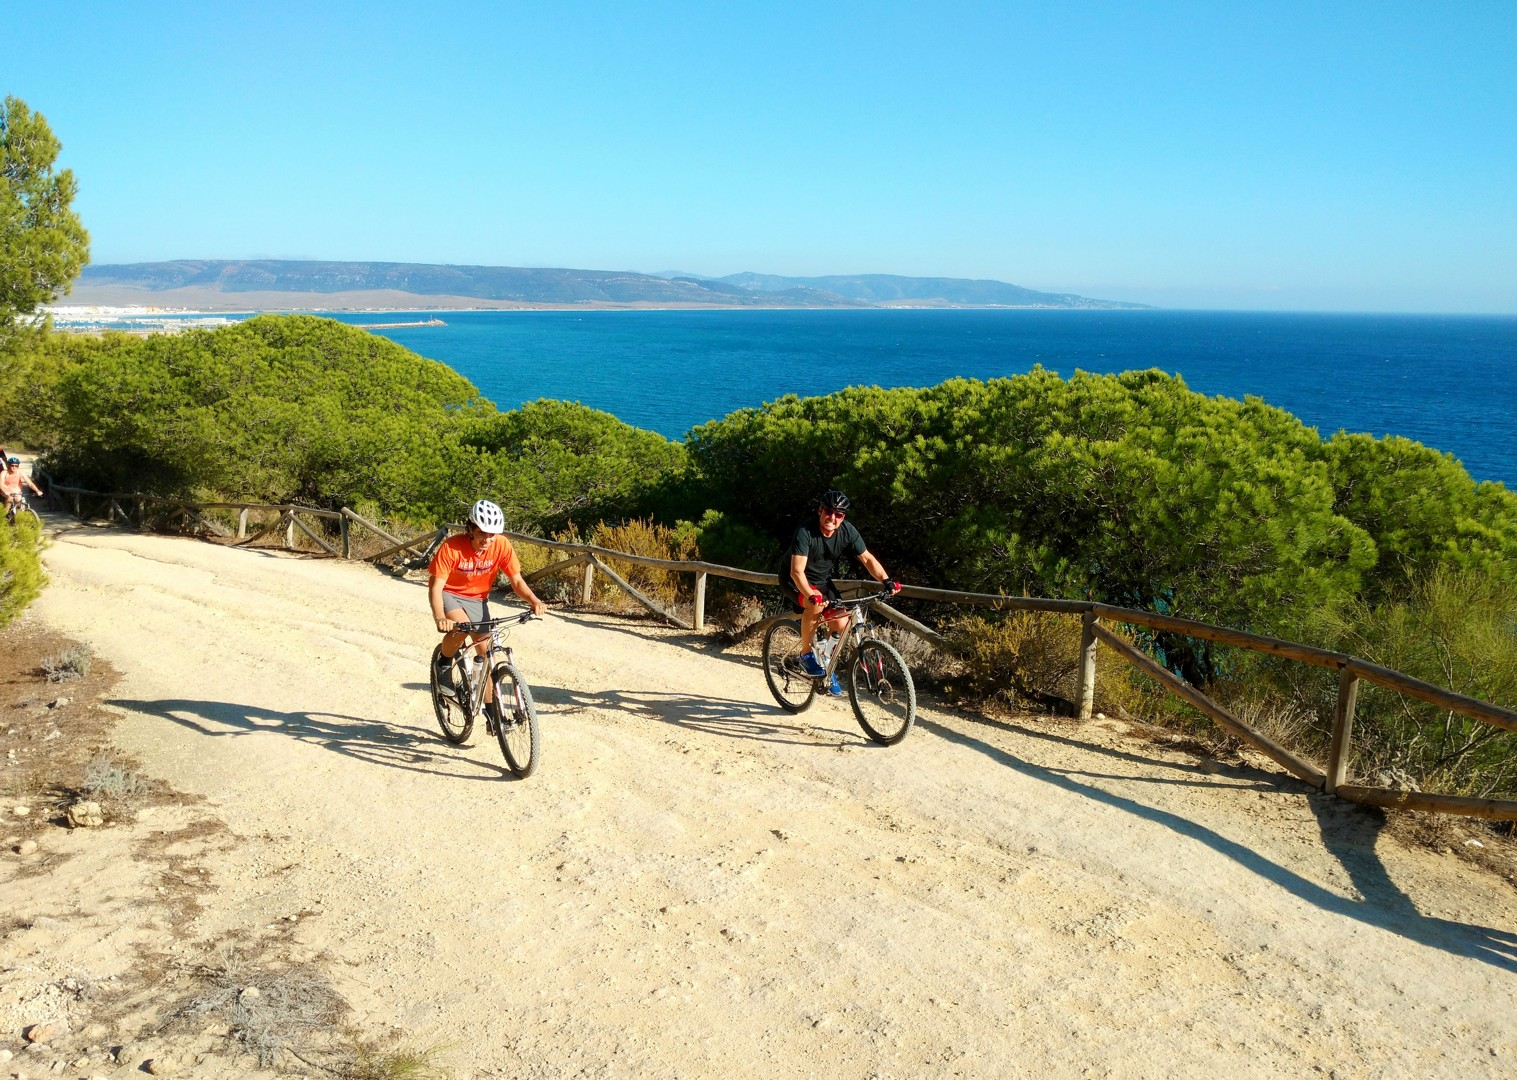 children-friendly-cycling-holiday-experience-in-spain.jpg - Southern Spain - Coastal Adventurer - Self-Guided Family Cycling Holiday - Family Cycling